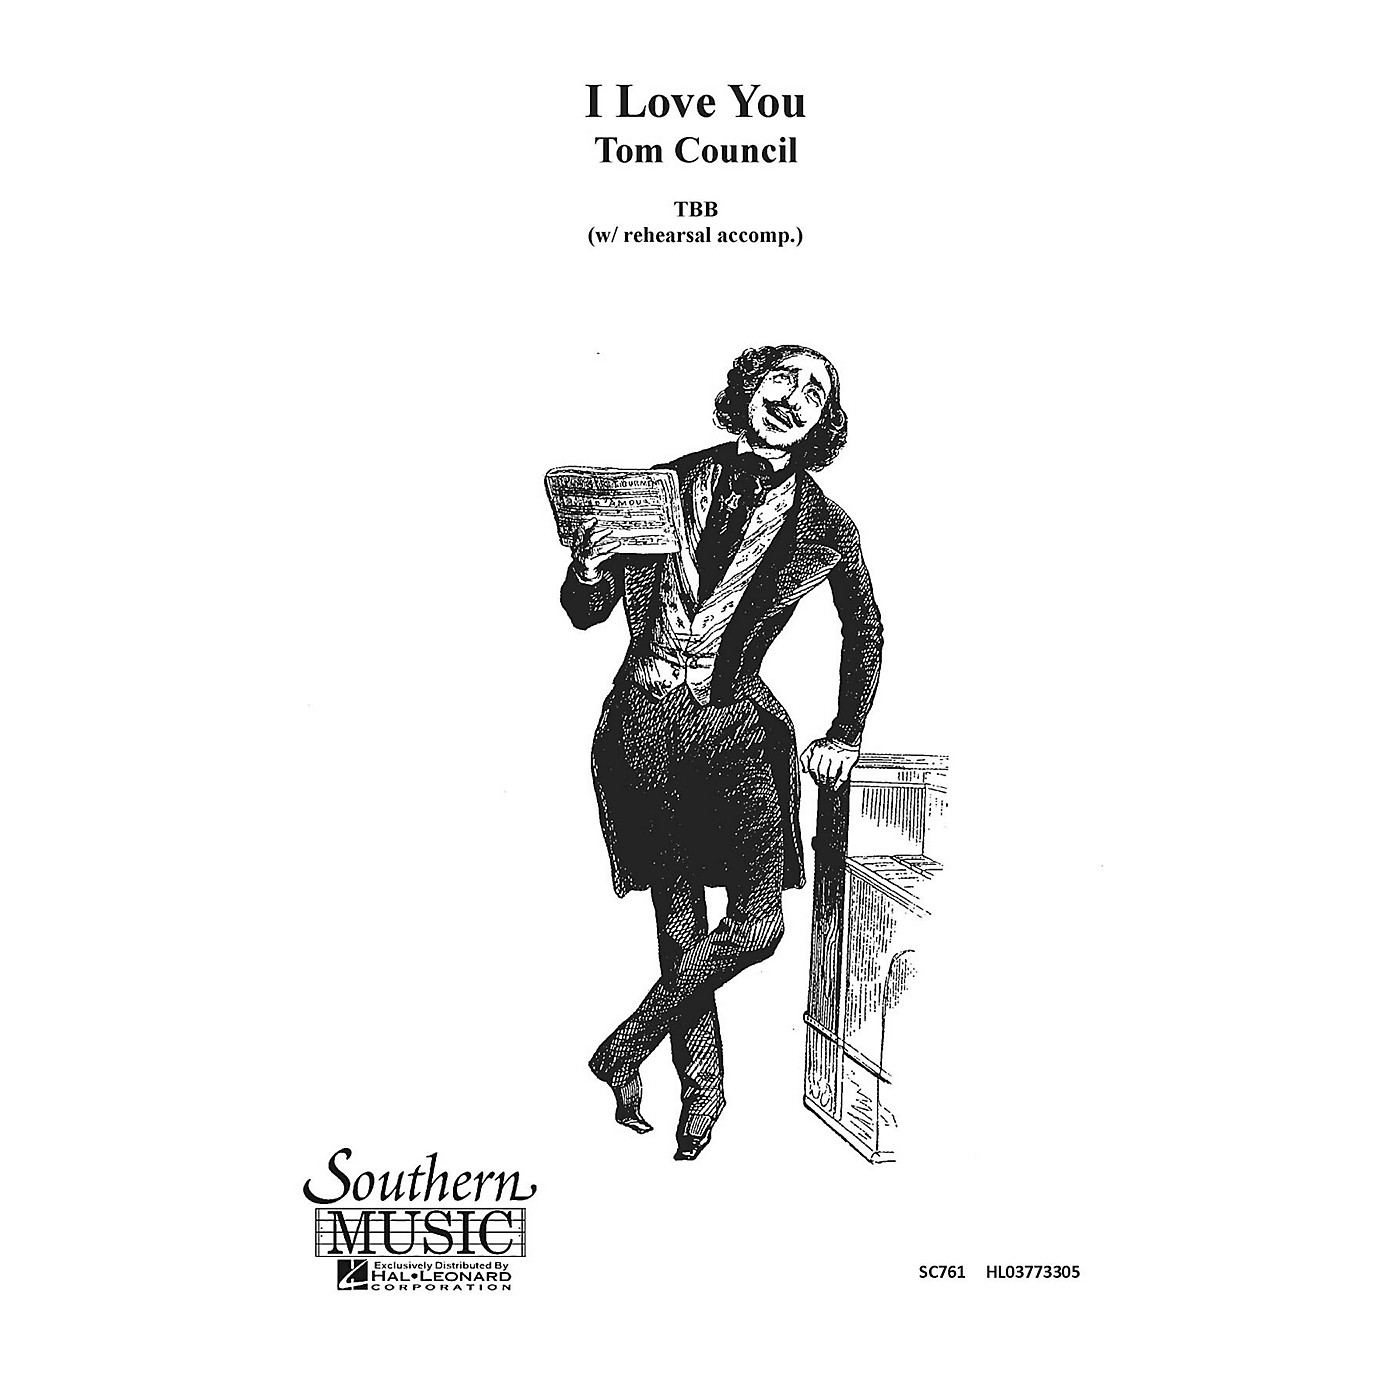 Southern I Love You TBB Composed by Tom Council thumbnail